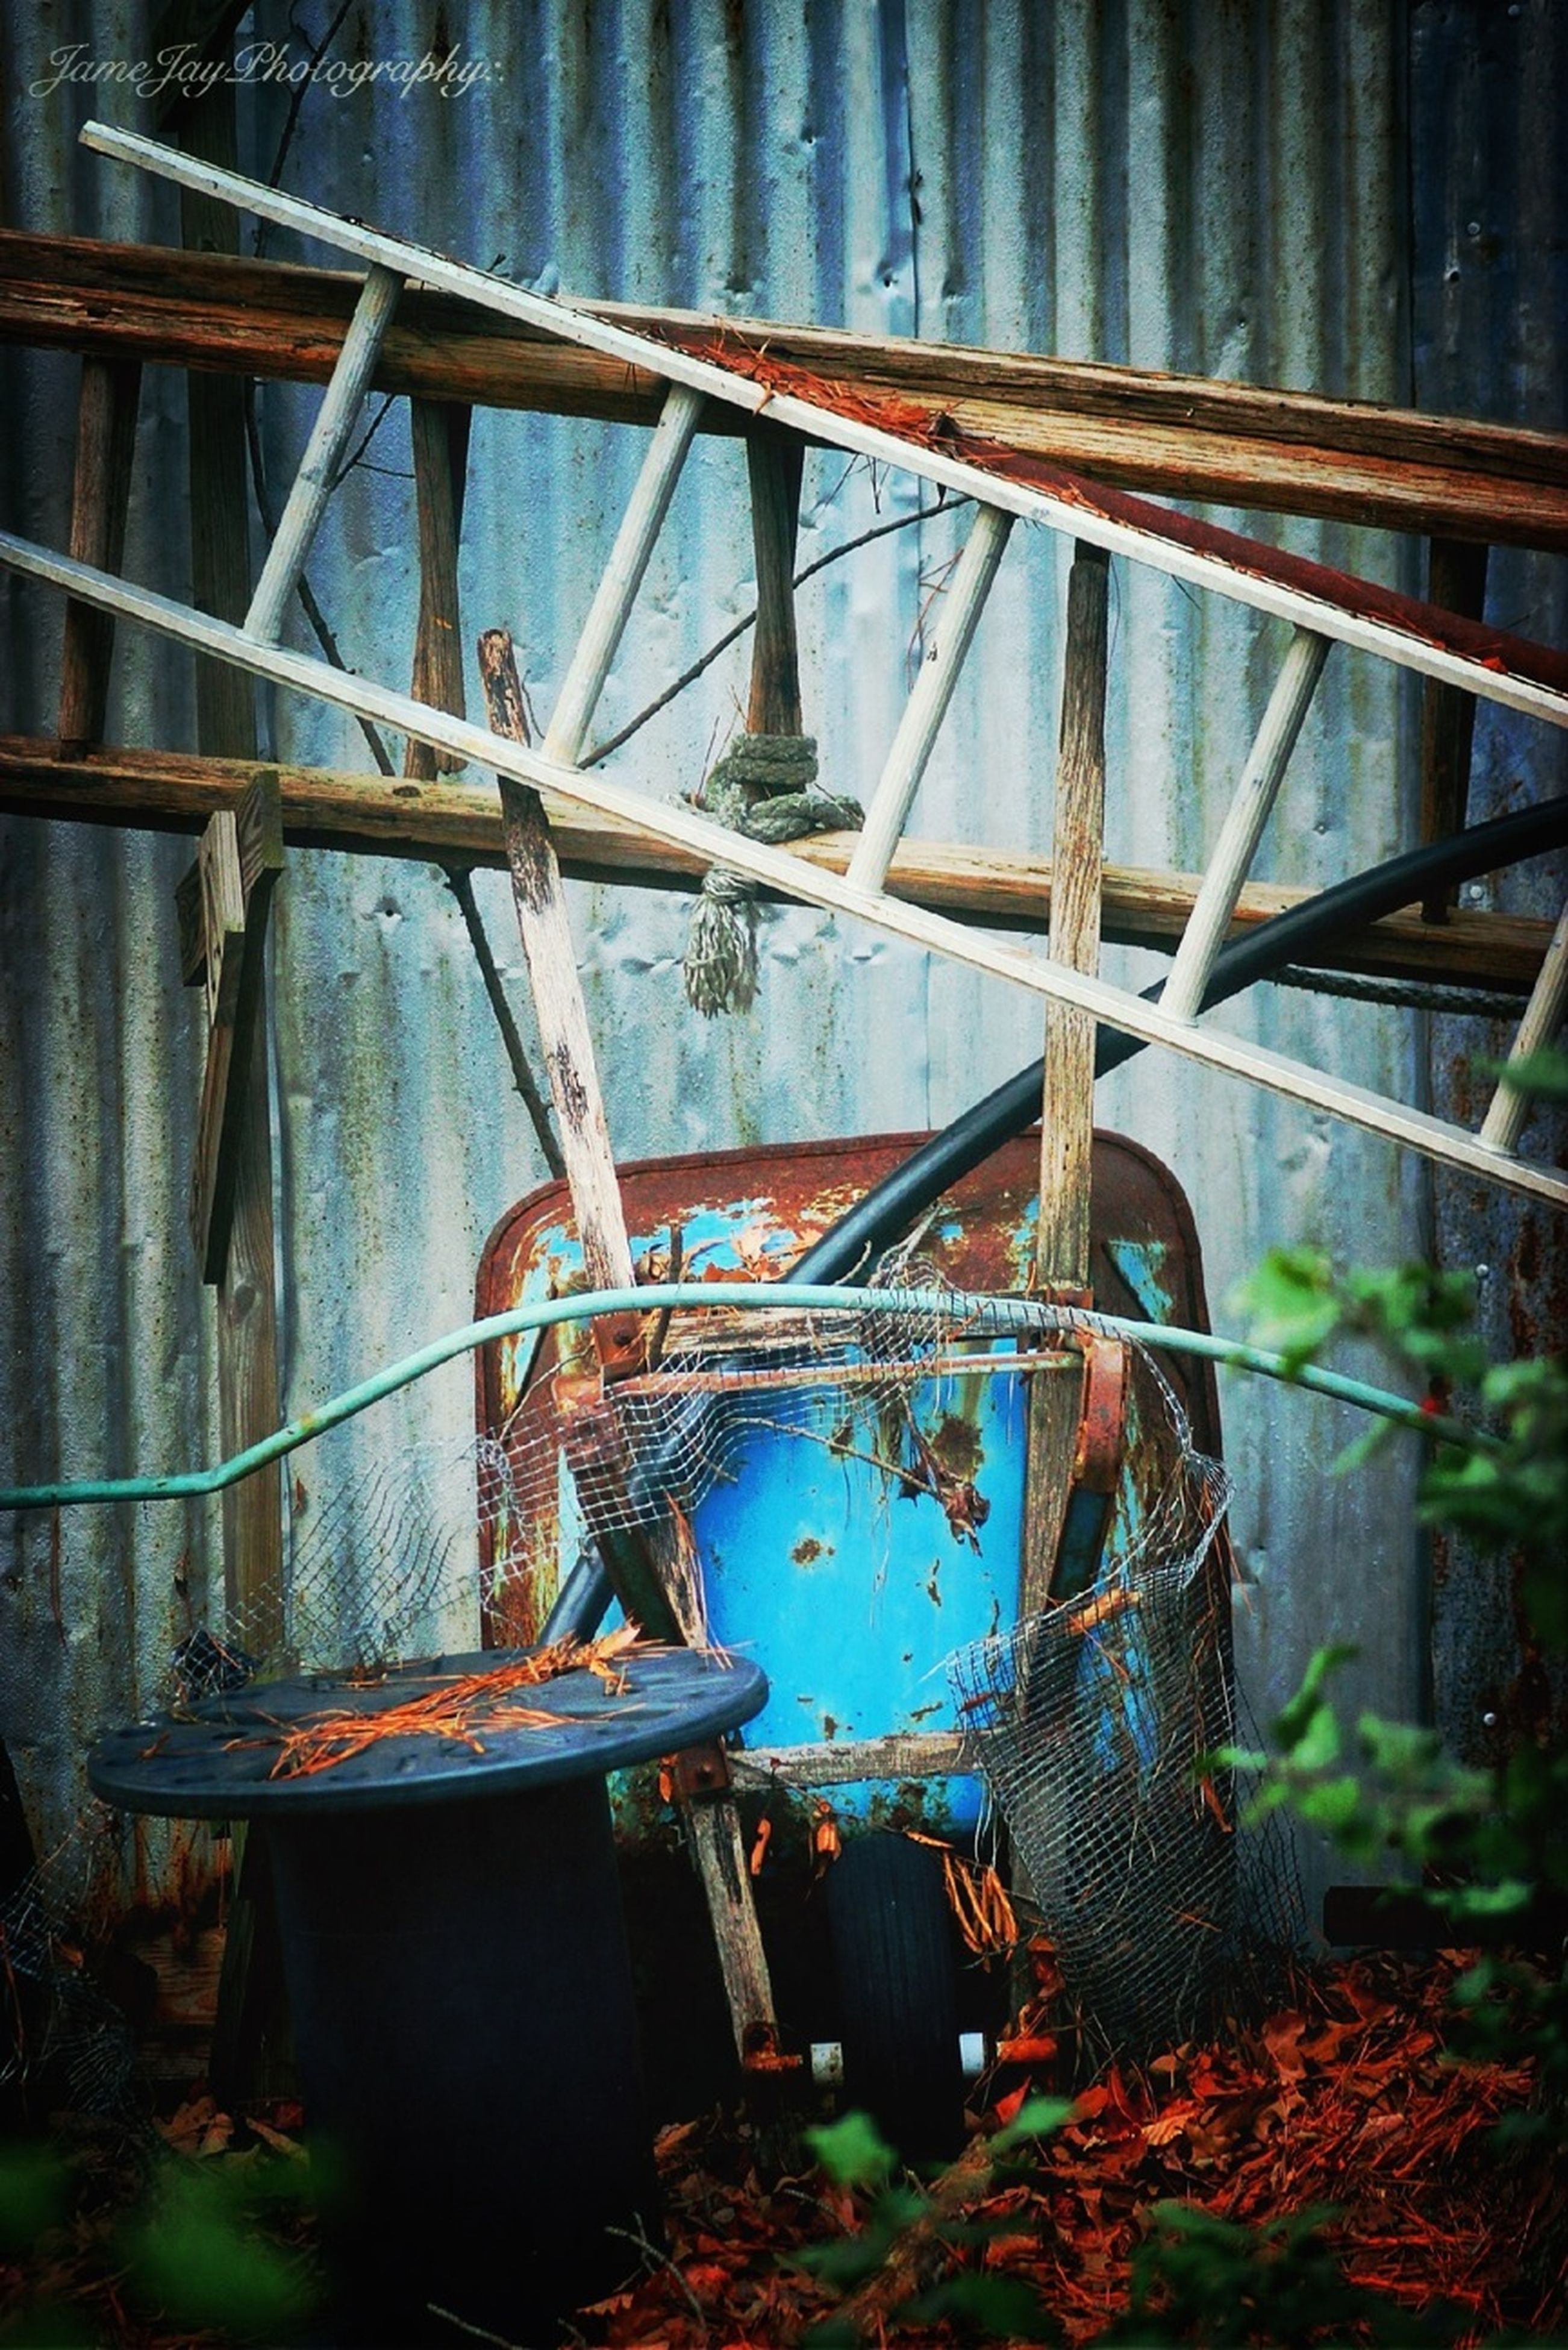 abandoned, obsolete, damaged, run-down, deterioration, rusty, old, metal, built structure, nautical vessel, weathered, architecture, metallic, broken, boat, bad condition, no people, moored, day, water